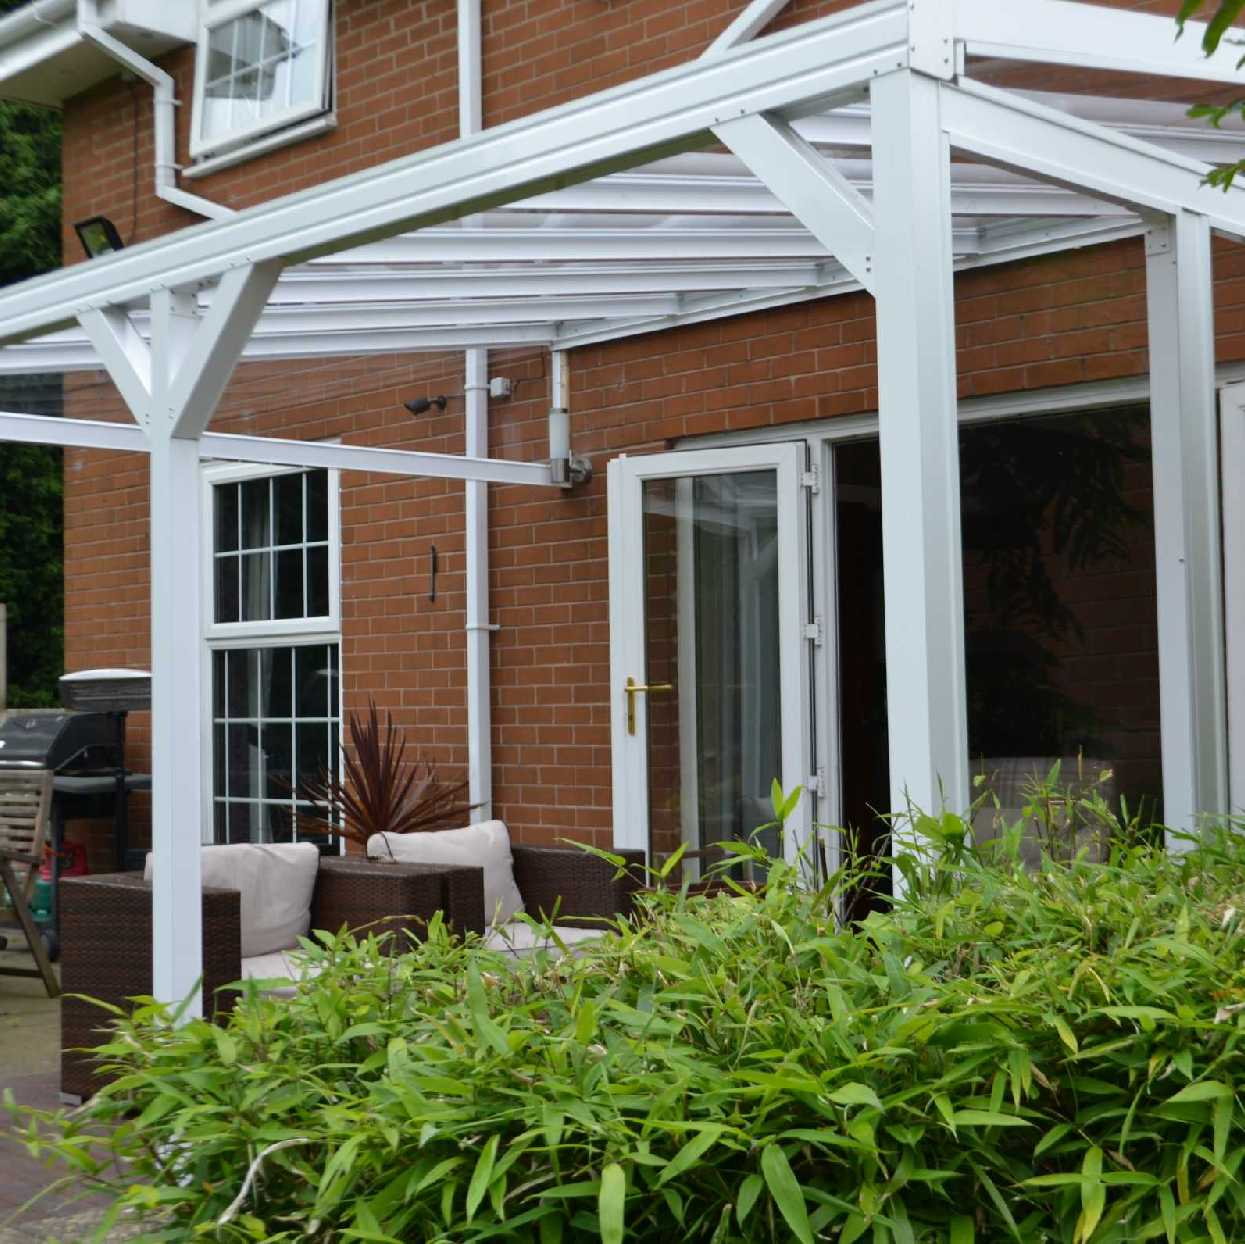 Omega Smart Lean-To Canopy with 6mm Glass Clear Plate Polycarbonate Glazing - 4.2m (W) x 4.0m (P), (3) Supporting Posts from Omega Build